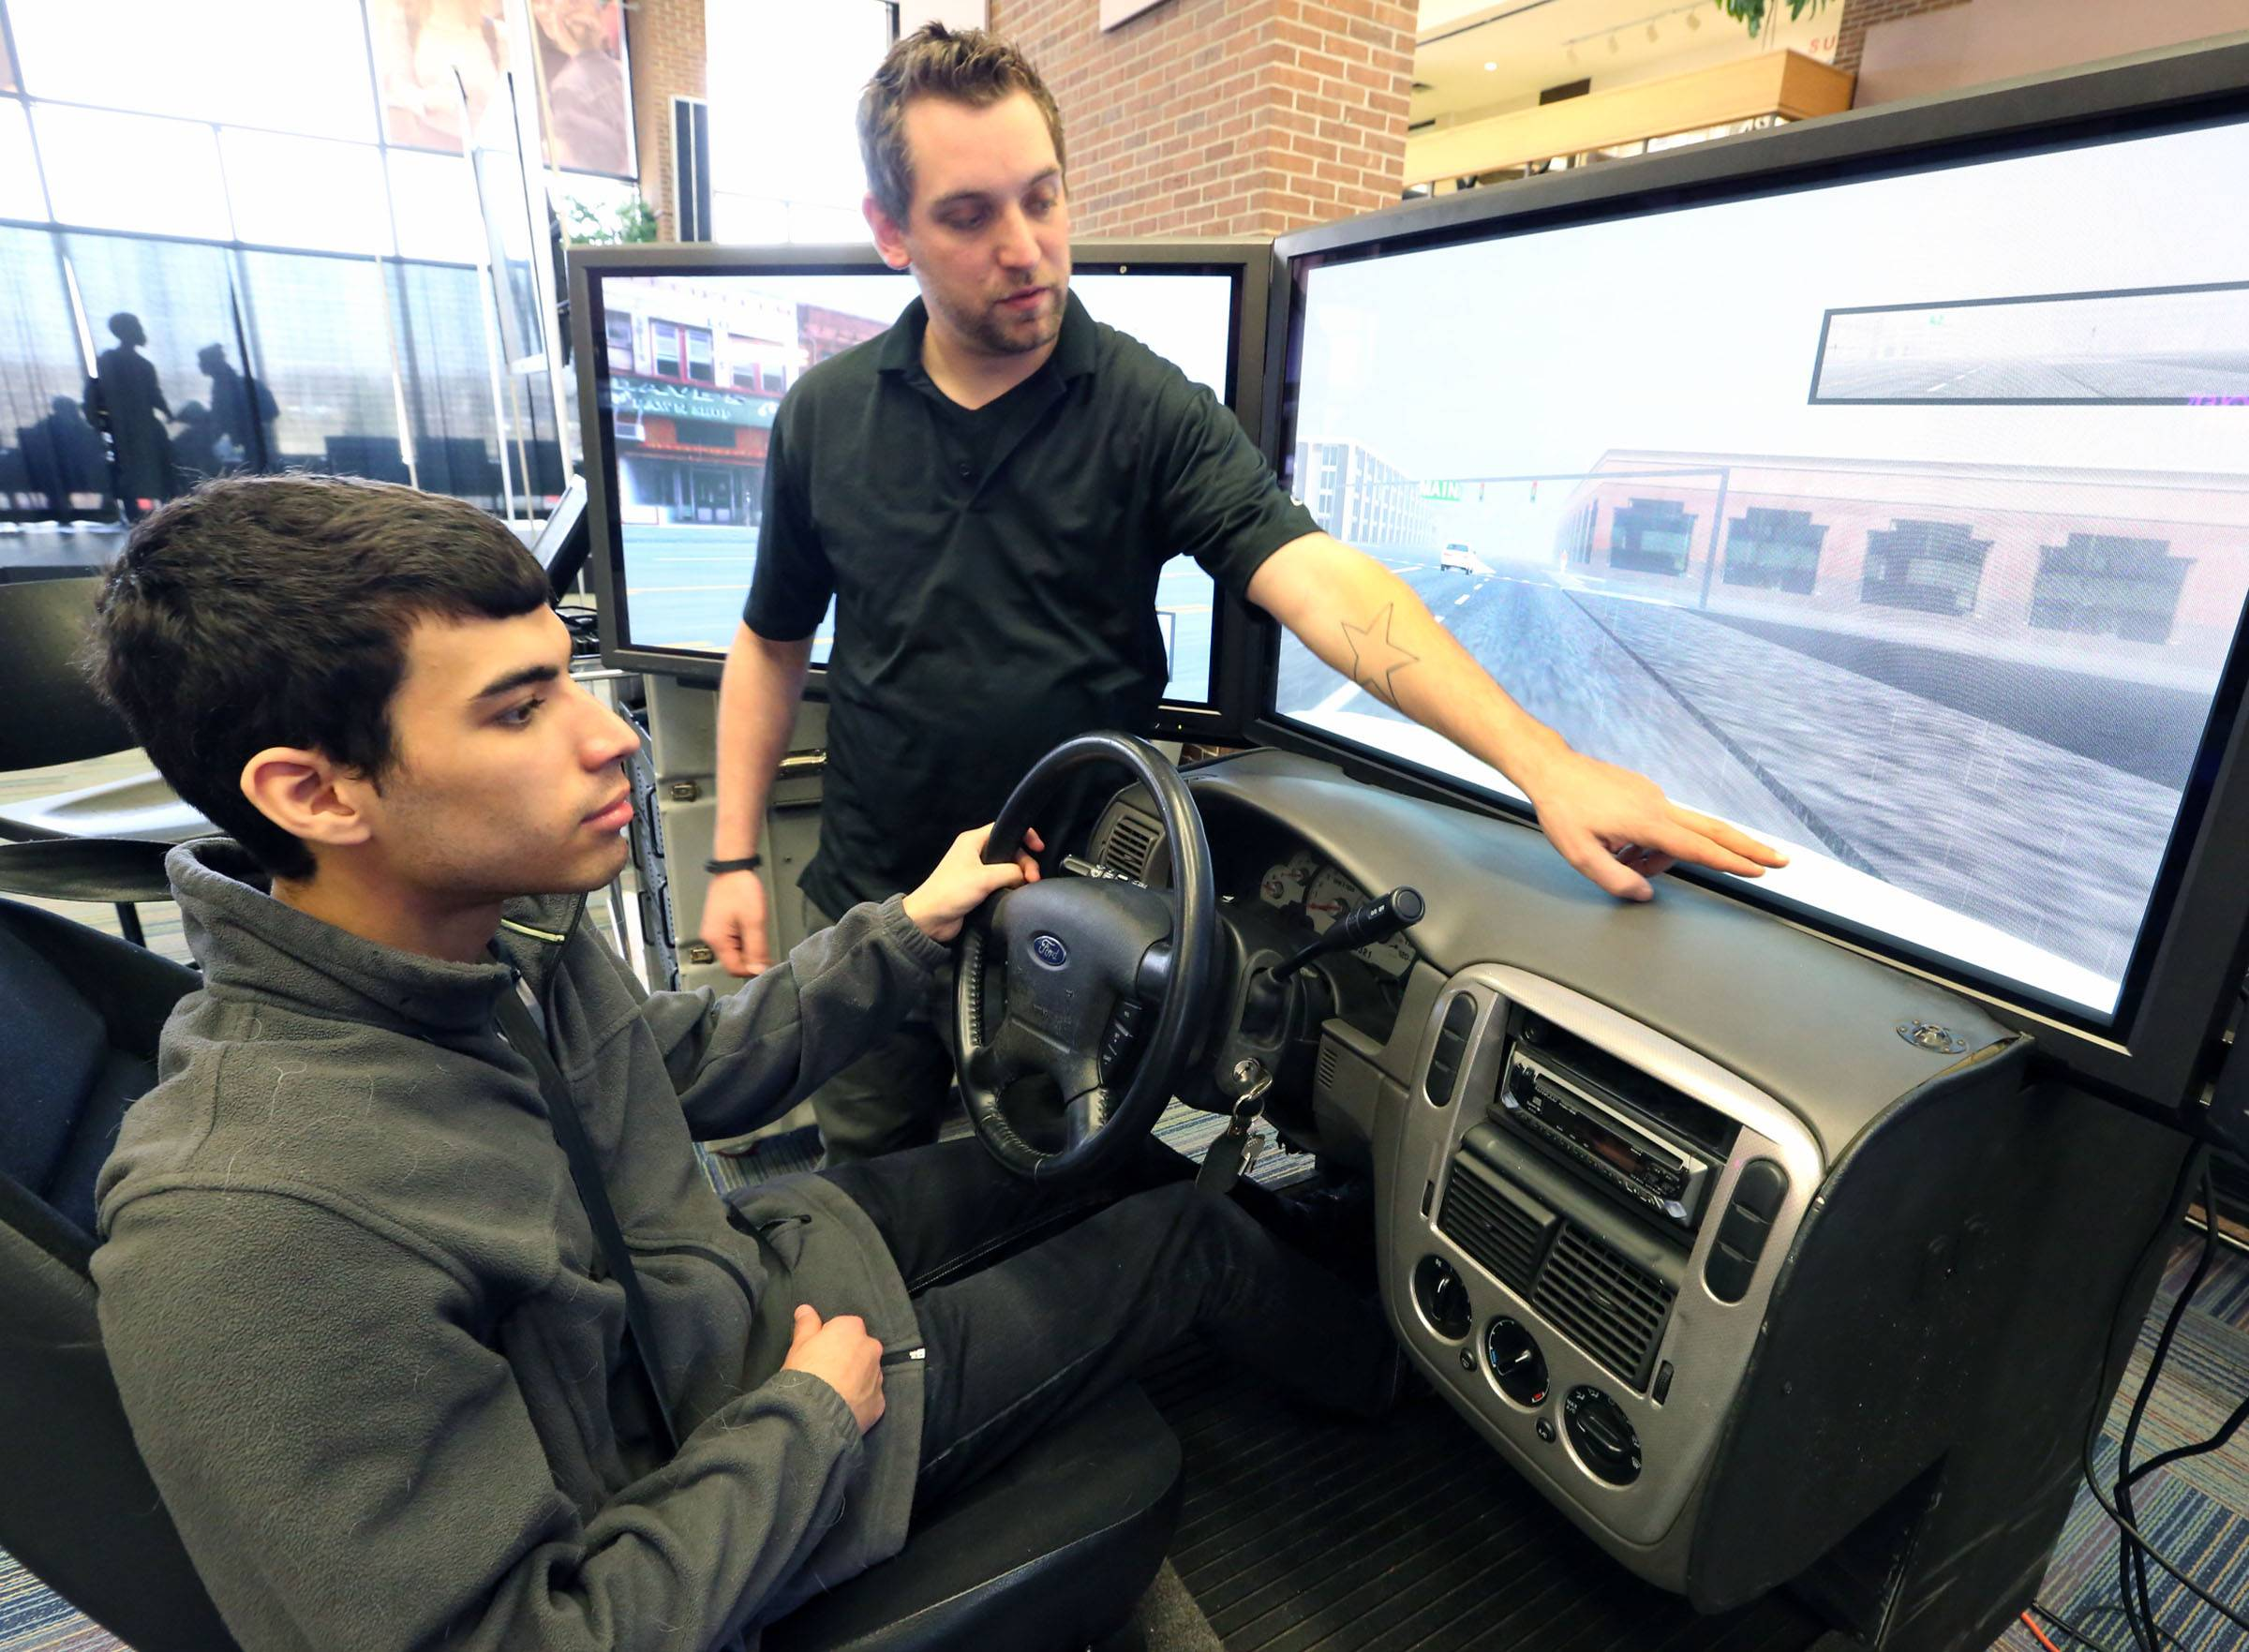 Andrew Tipton, a Save a Life Tour program manager, explains to Harper student Dan Serranol how to use a drunken driving simulator at the Palatine campus.